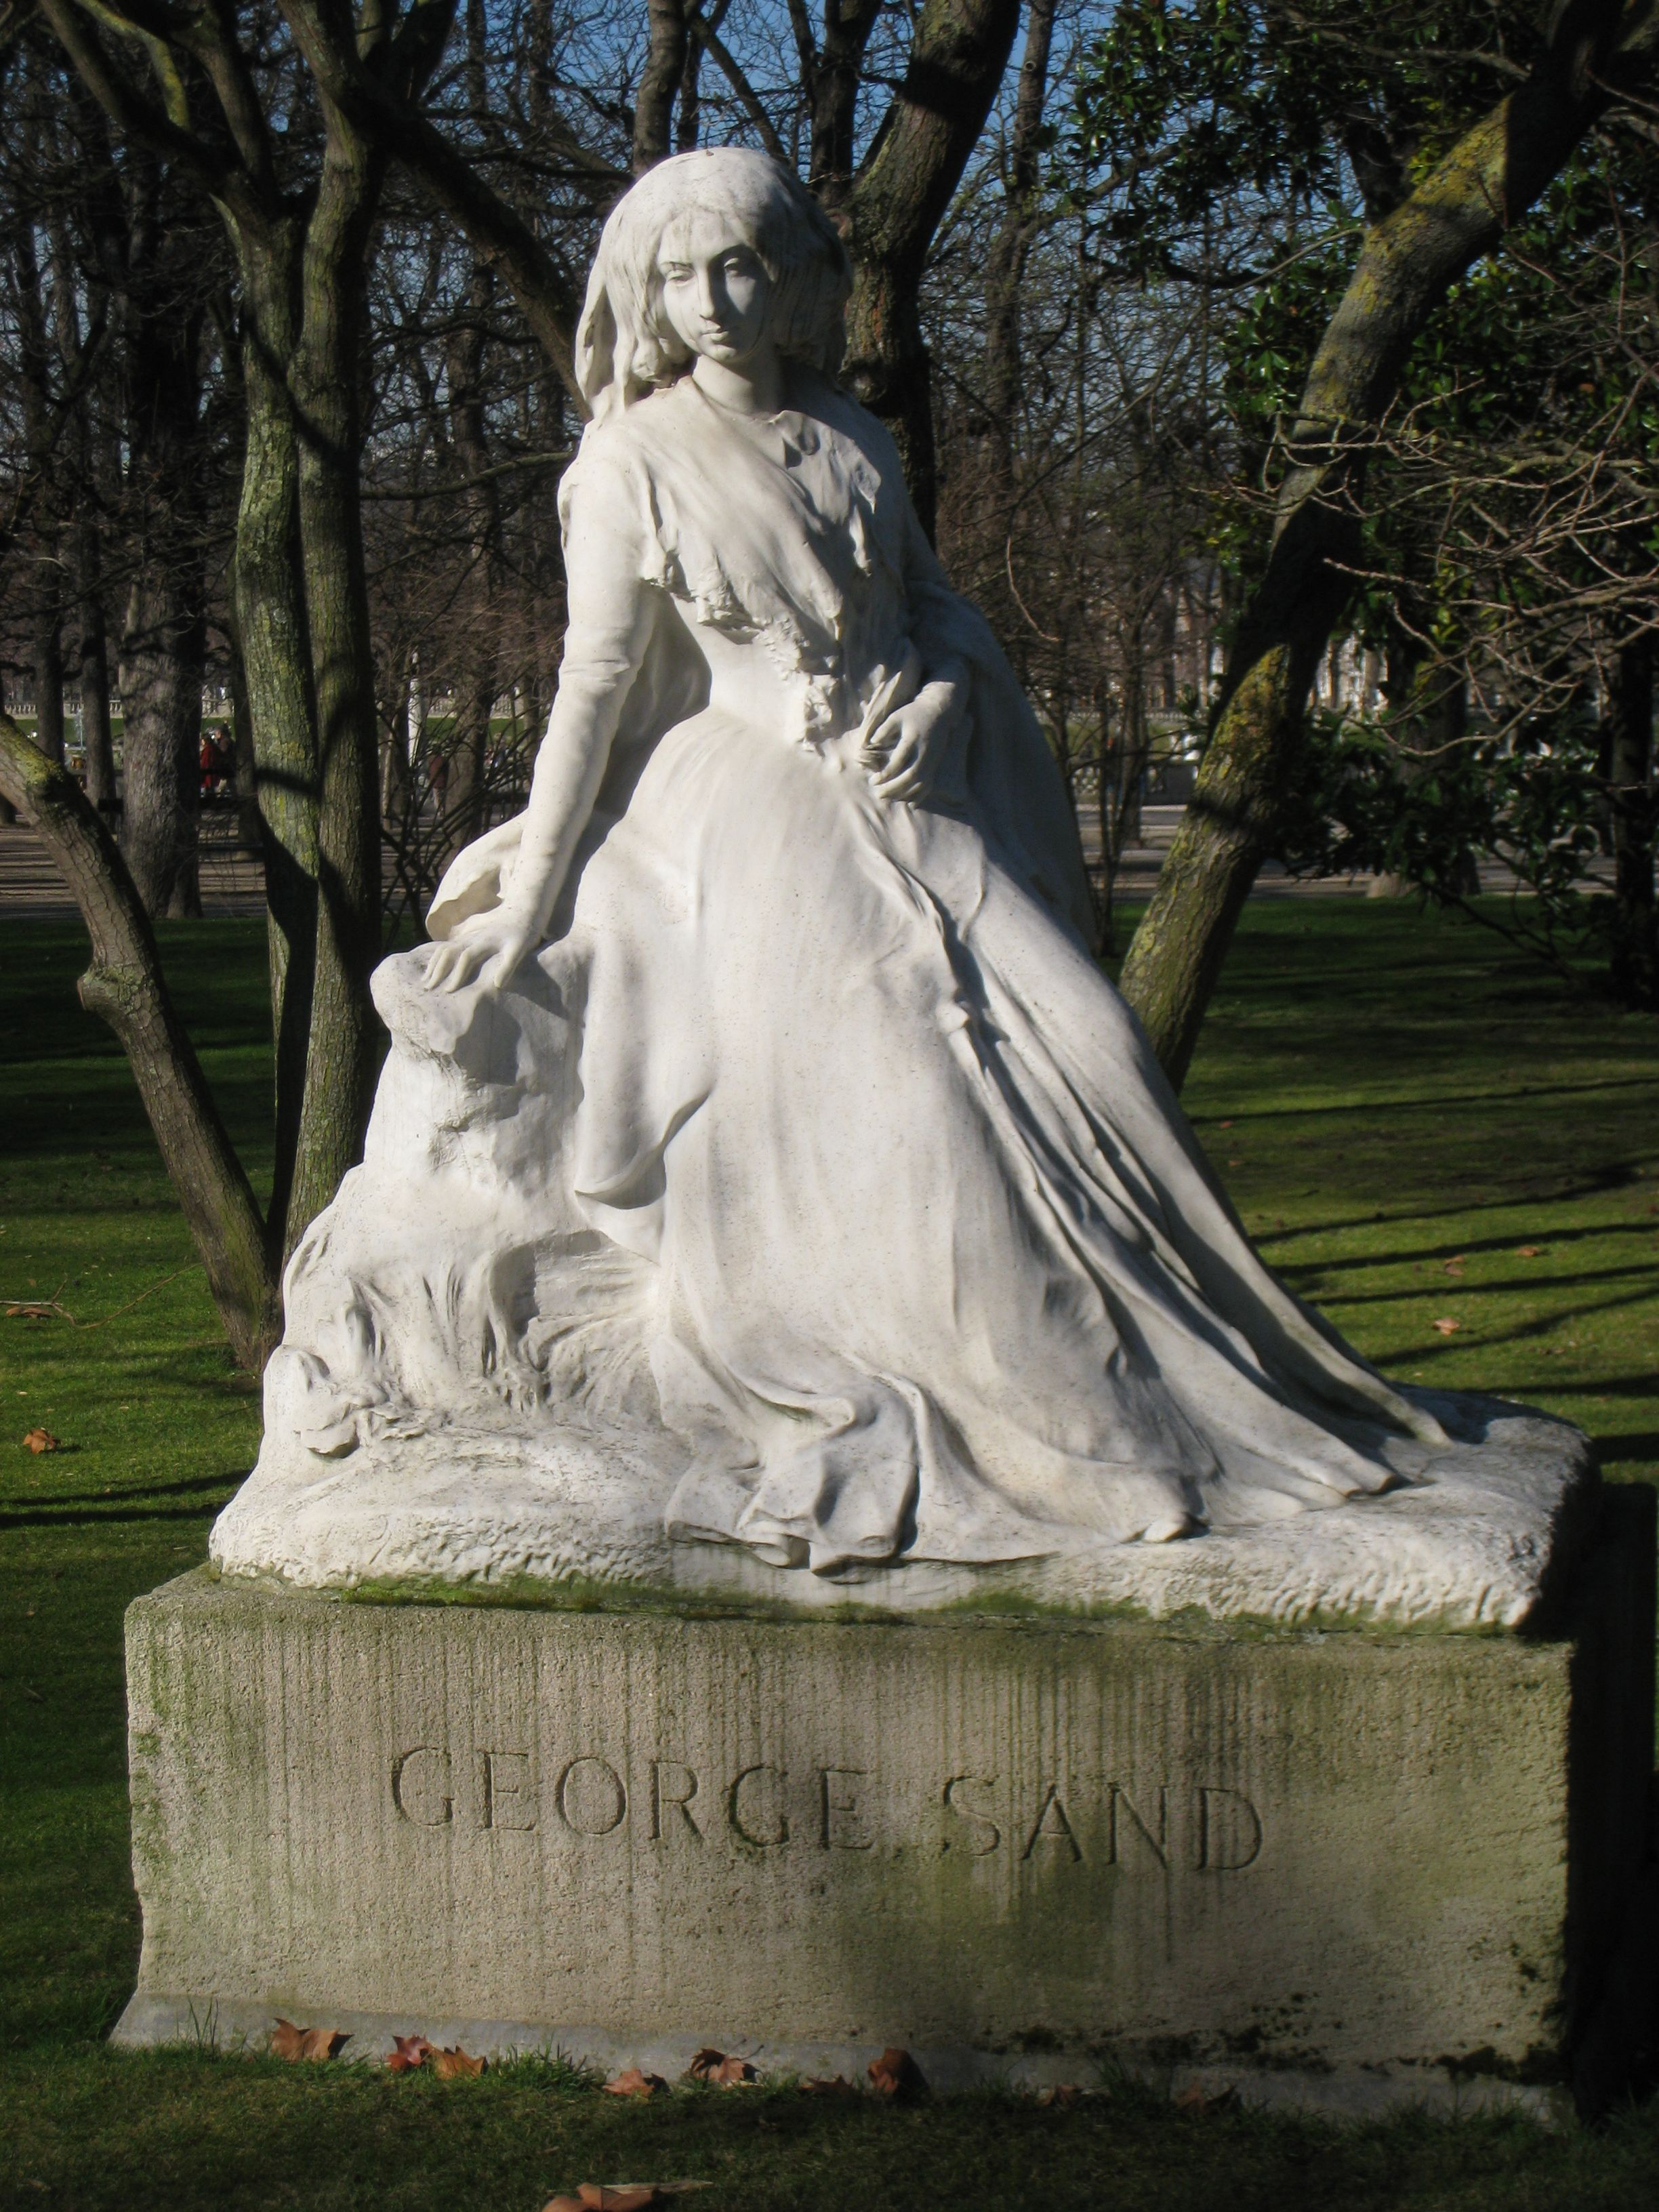 7bf24402cd4c1ba4aefb3417a290a1f9 - The Monument To Chopin In The Luxembourg Gardens